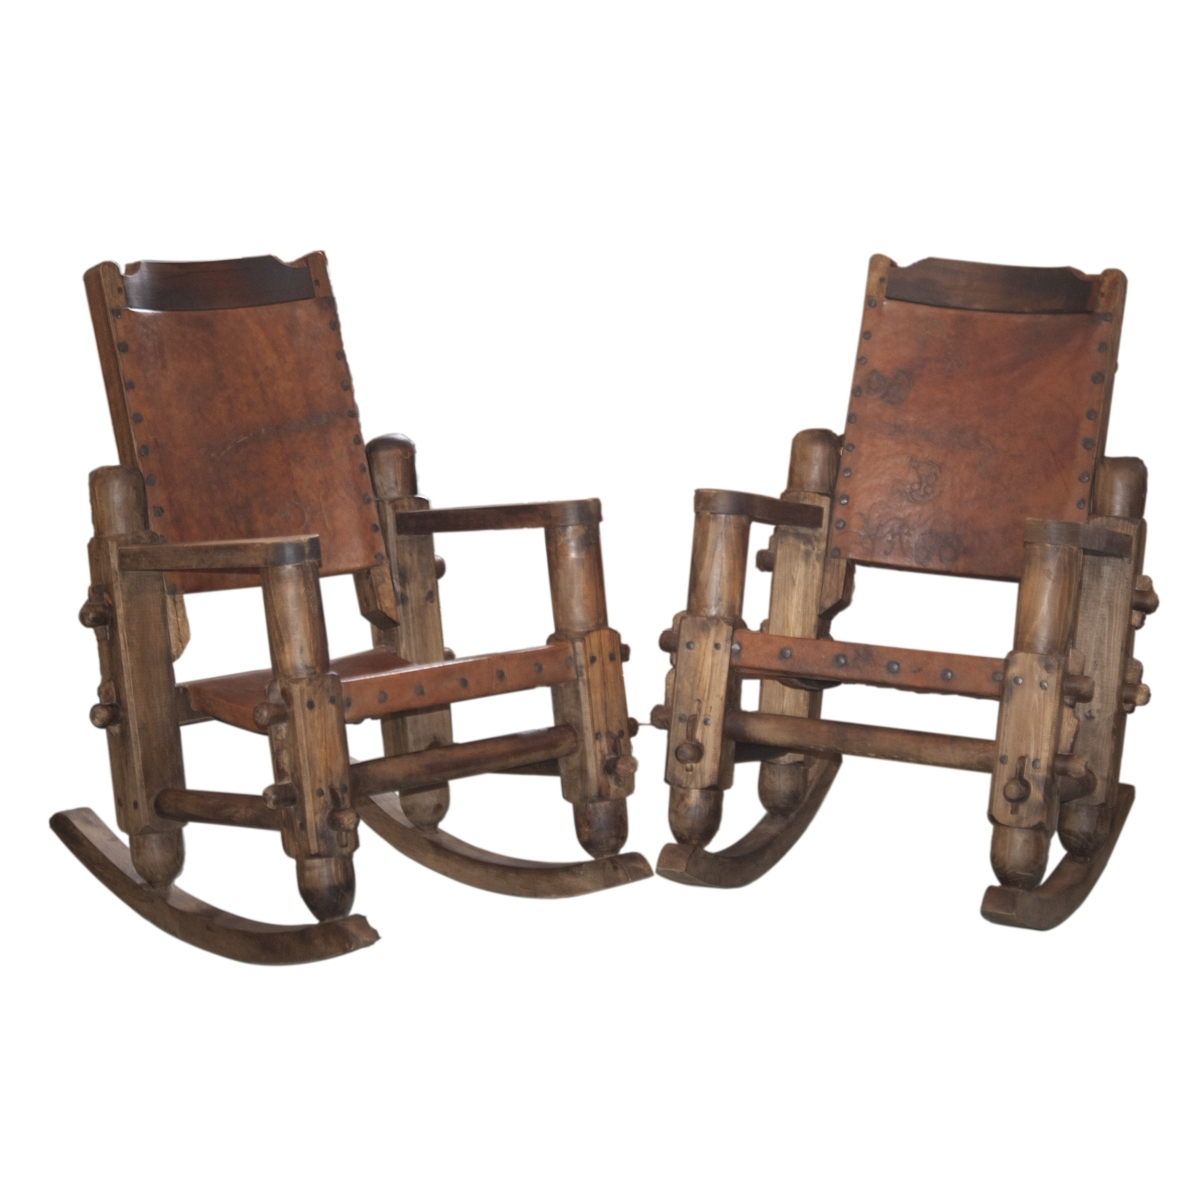 Lot #260: Vintage Mexican Wooden & Leather Rocking Chairs (View 11 of 15)